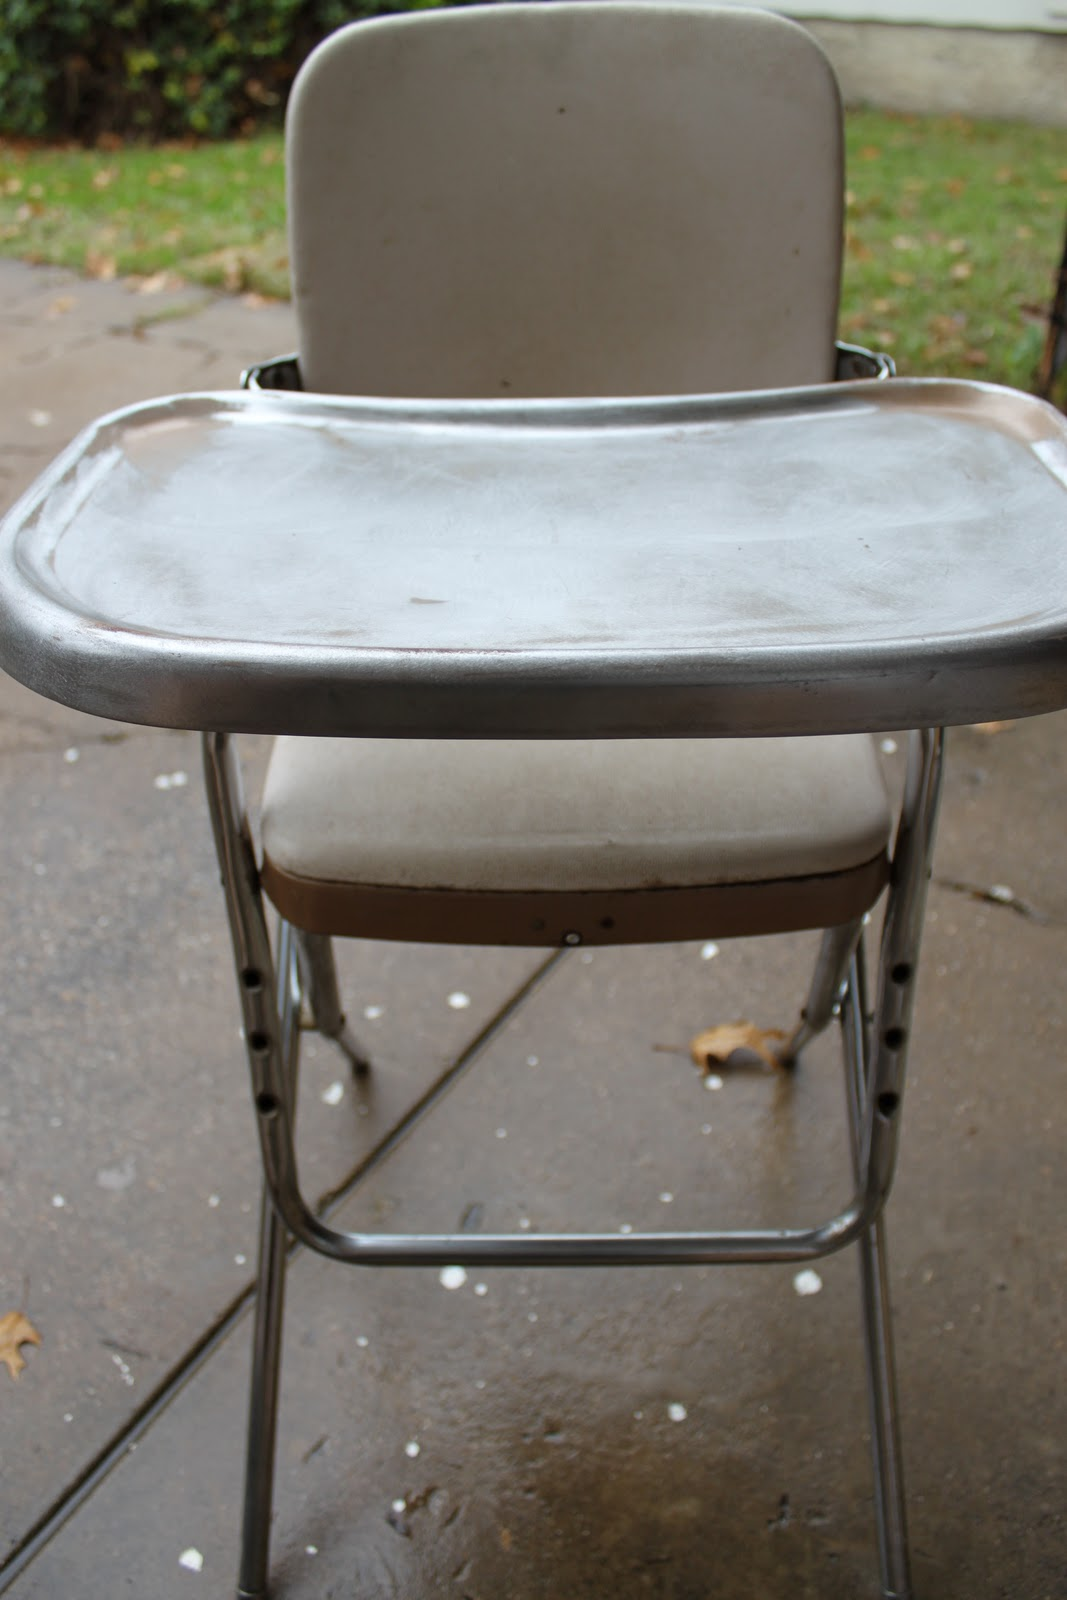 Antique metal high chair - As Eternal Optimists Betsy And I Saw Lots Of Potential I Took The Ugly Duckling Home And It Sat In The Garage For A While Until We Had Time To Get The